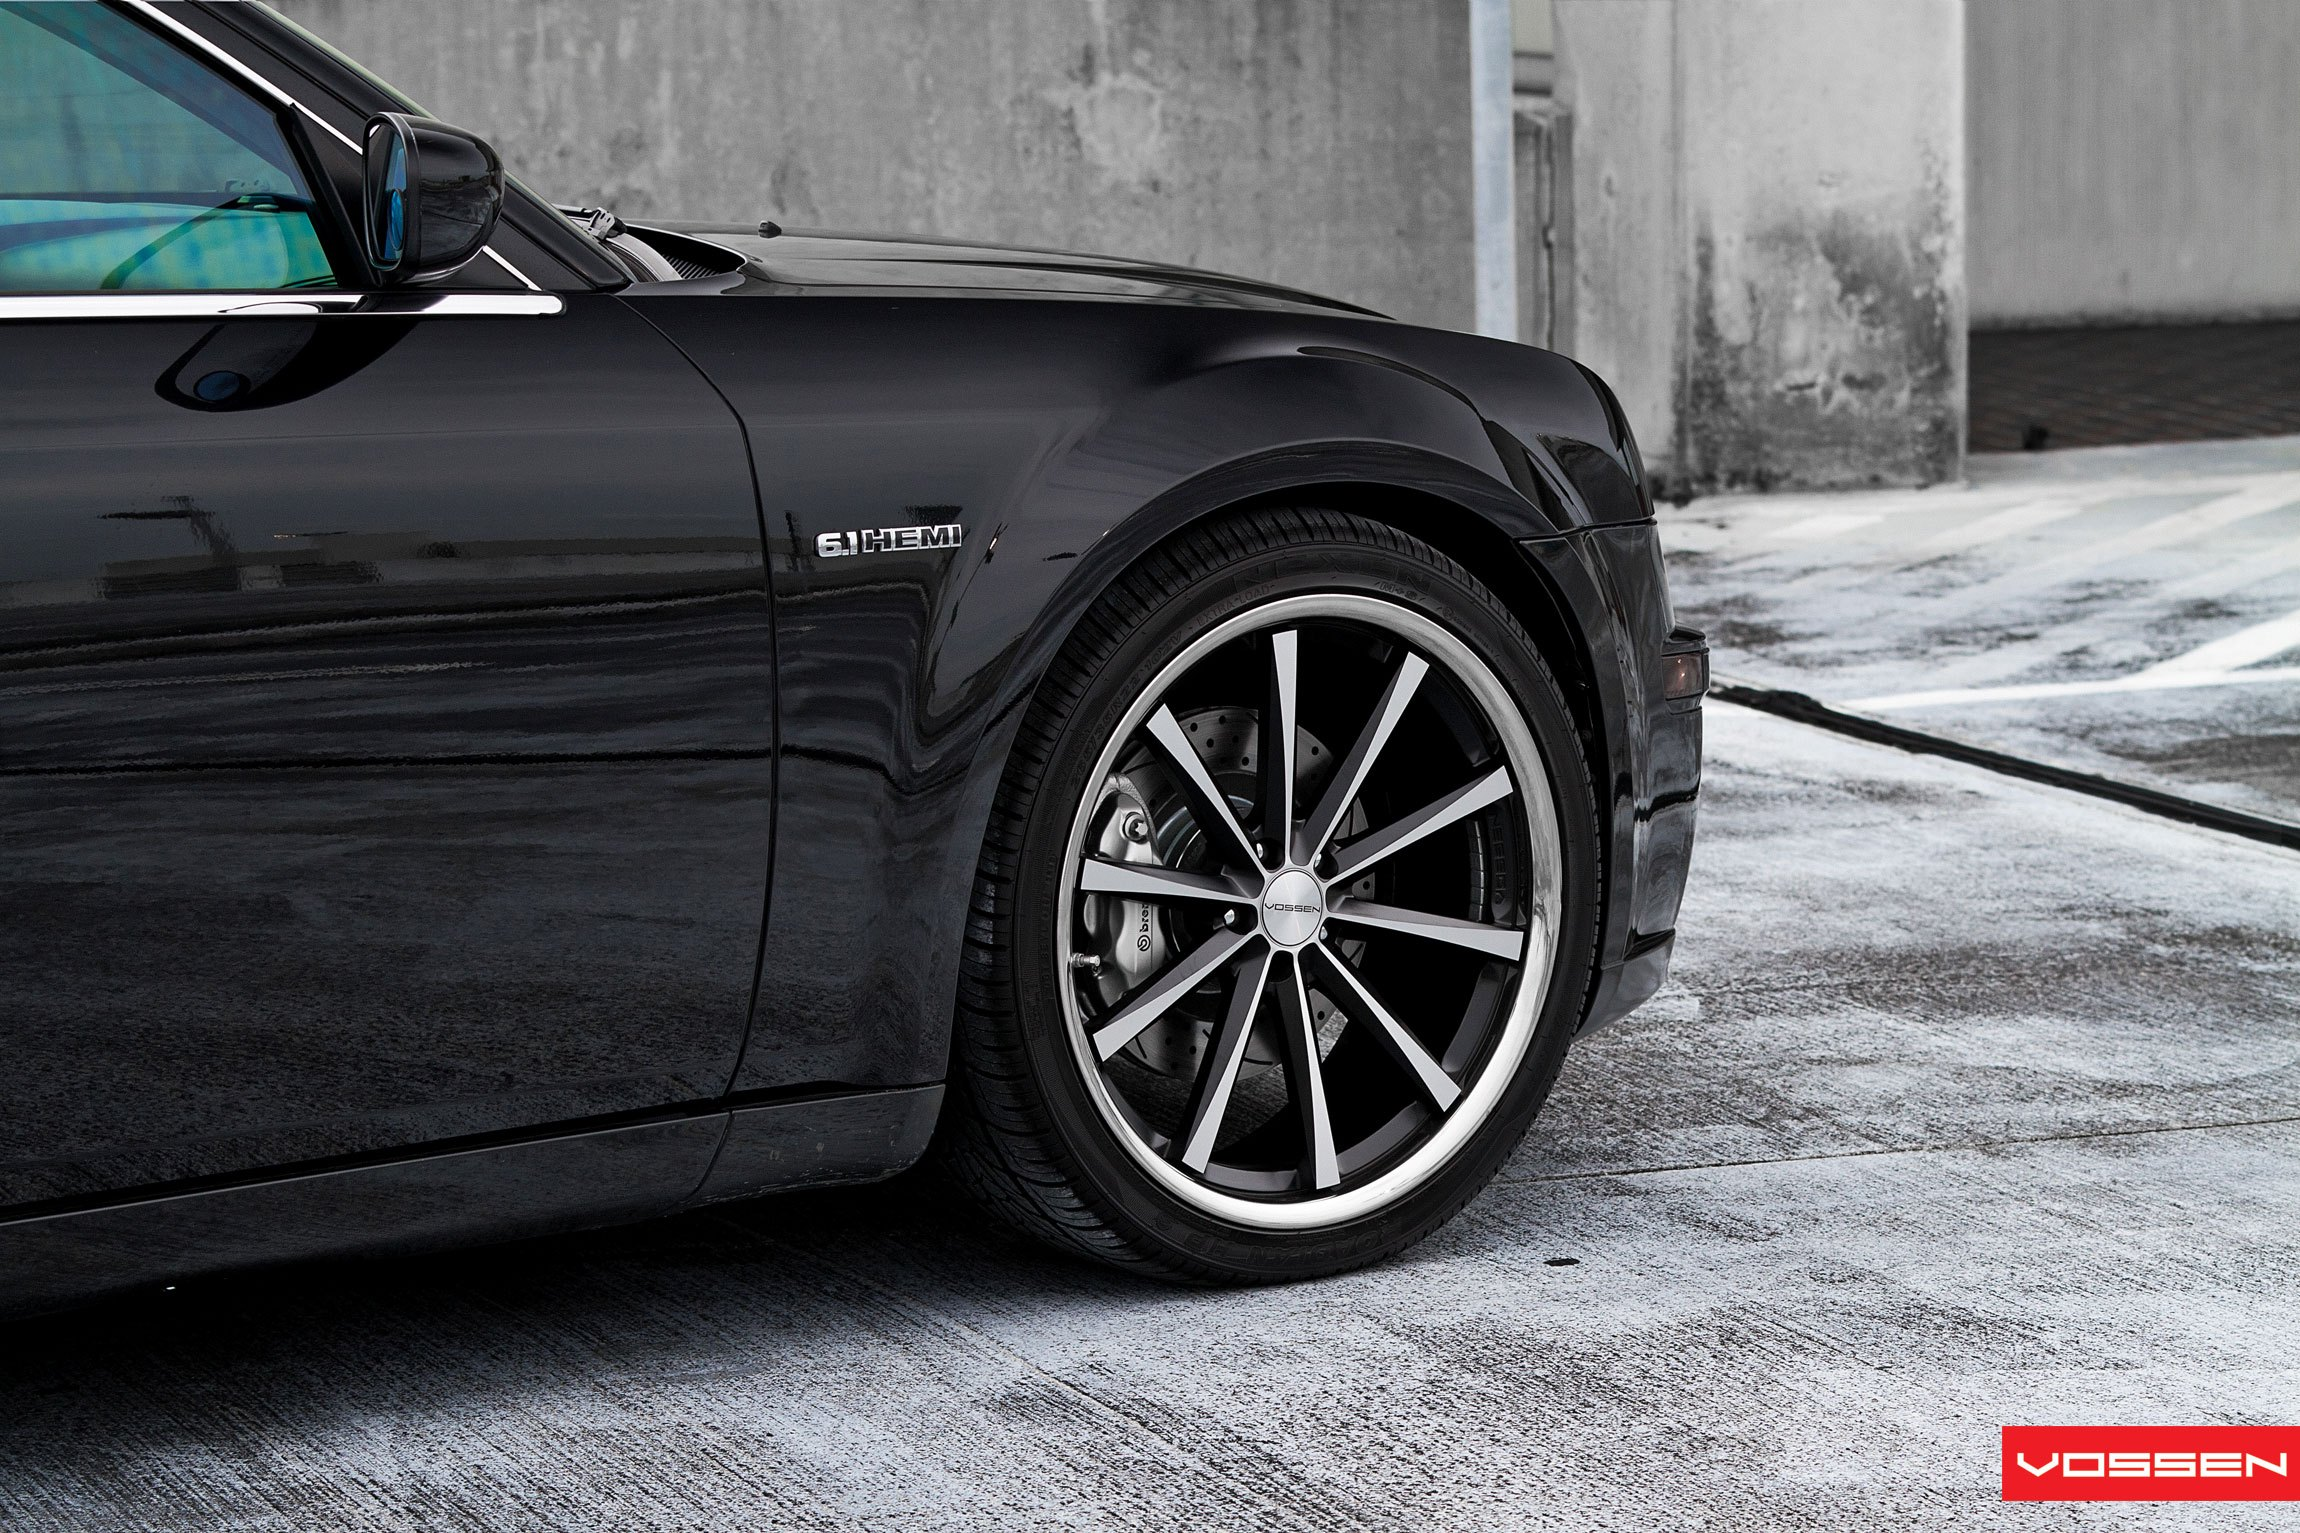 Vossen Rims with Brembo Brakes on Chrysler 300 - Photo by Vossen